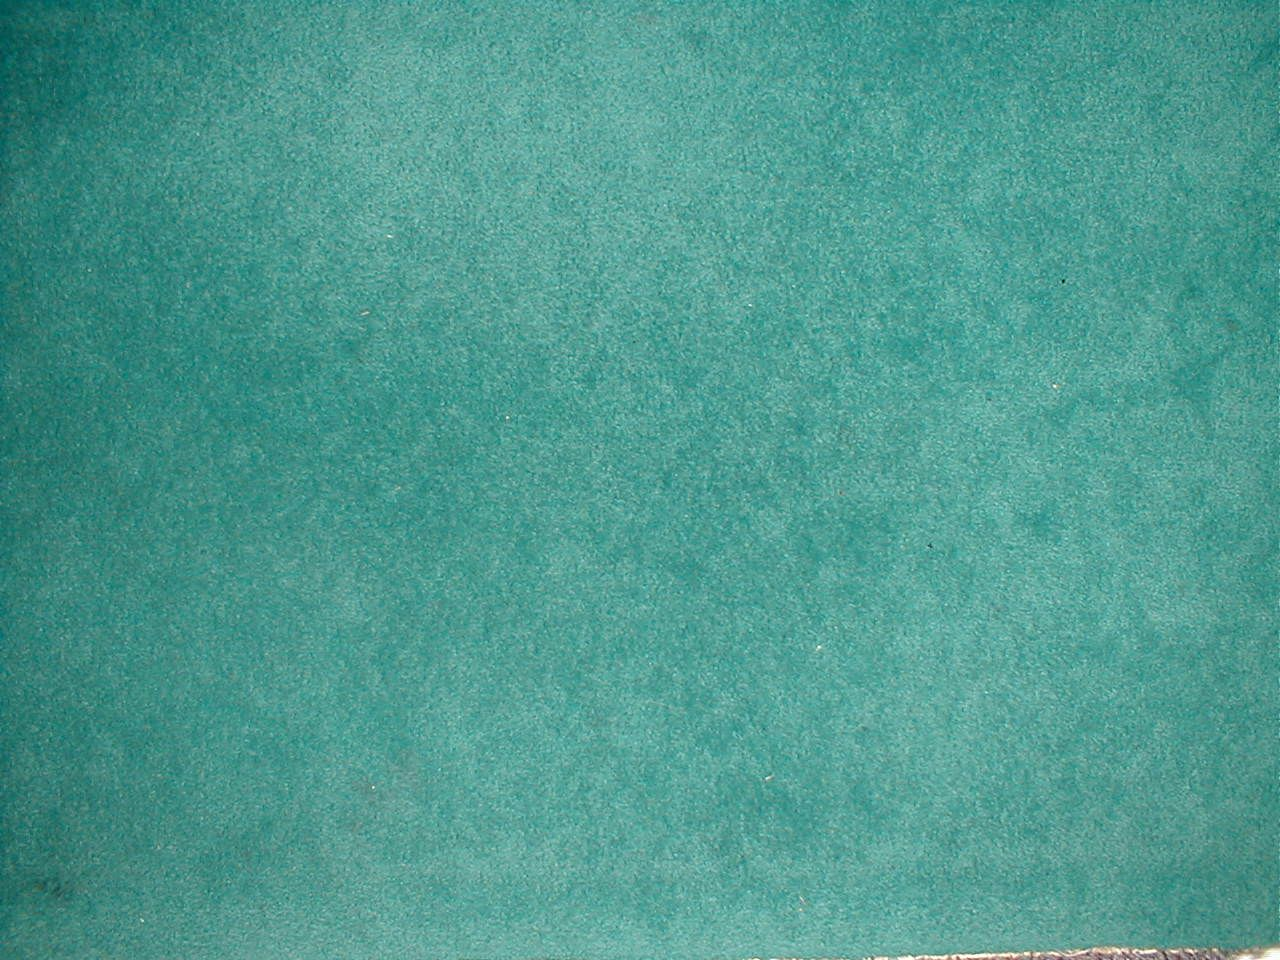 Teal Carpet Texture By Dougnaka On Deviantart Textured Carpet Teal Carpet Carpet Design